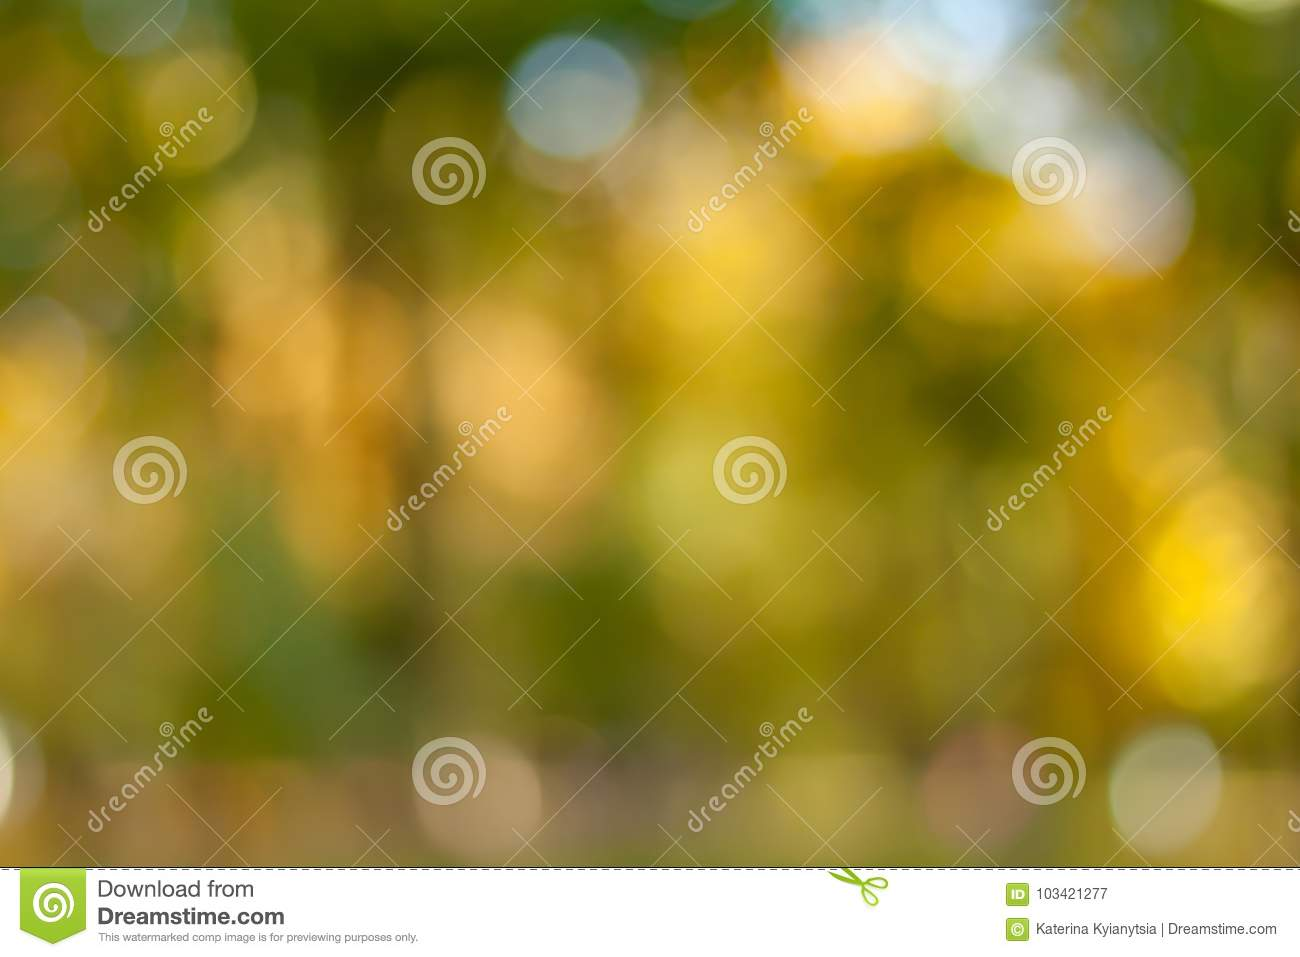 Blurry nature wallpaper. stock image. Image of lovely ...